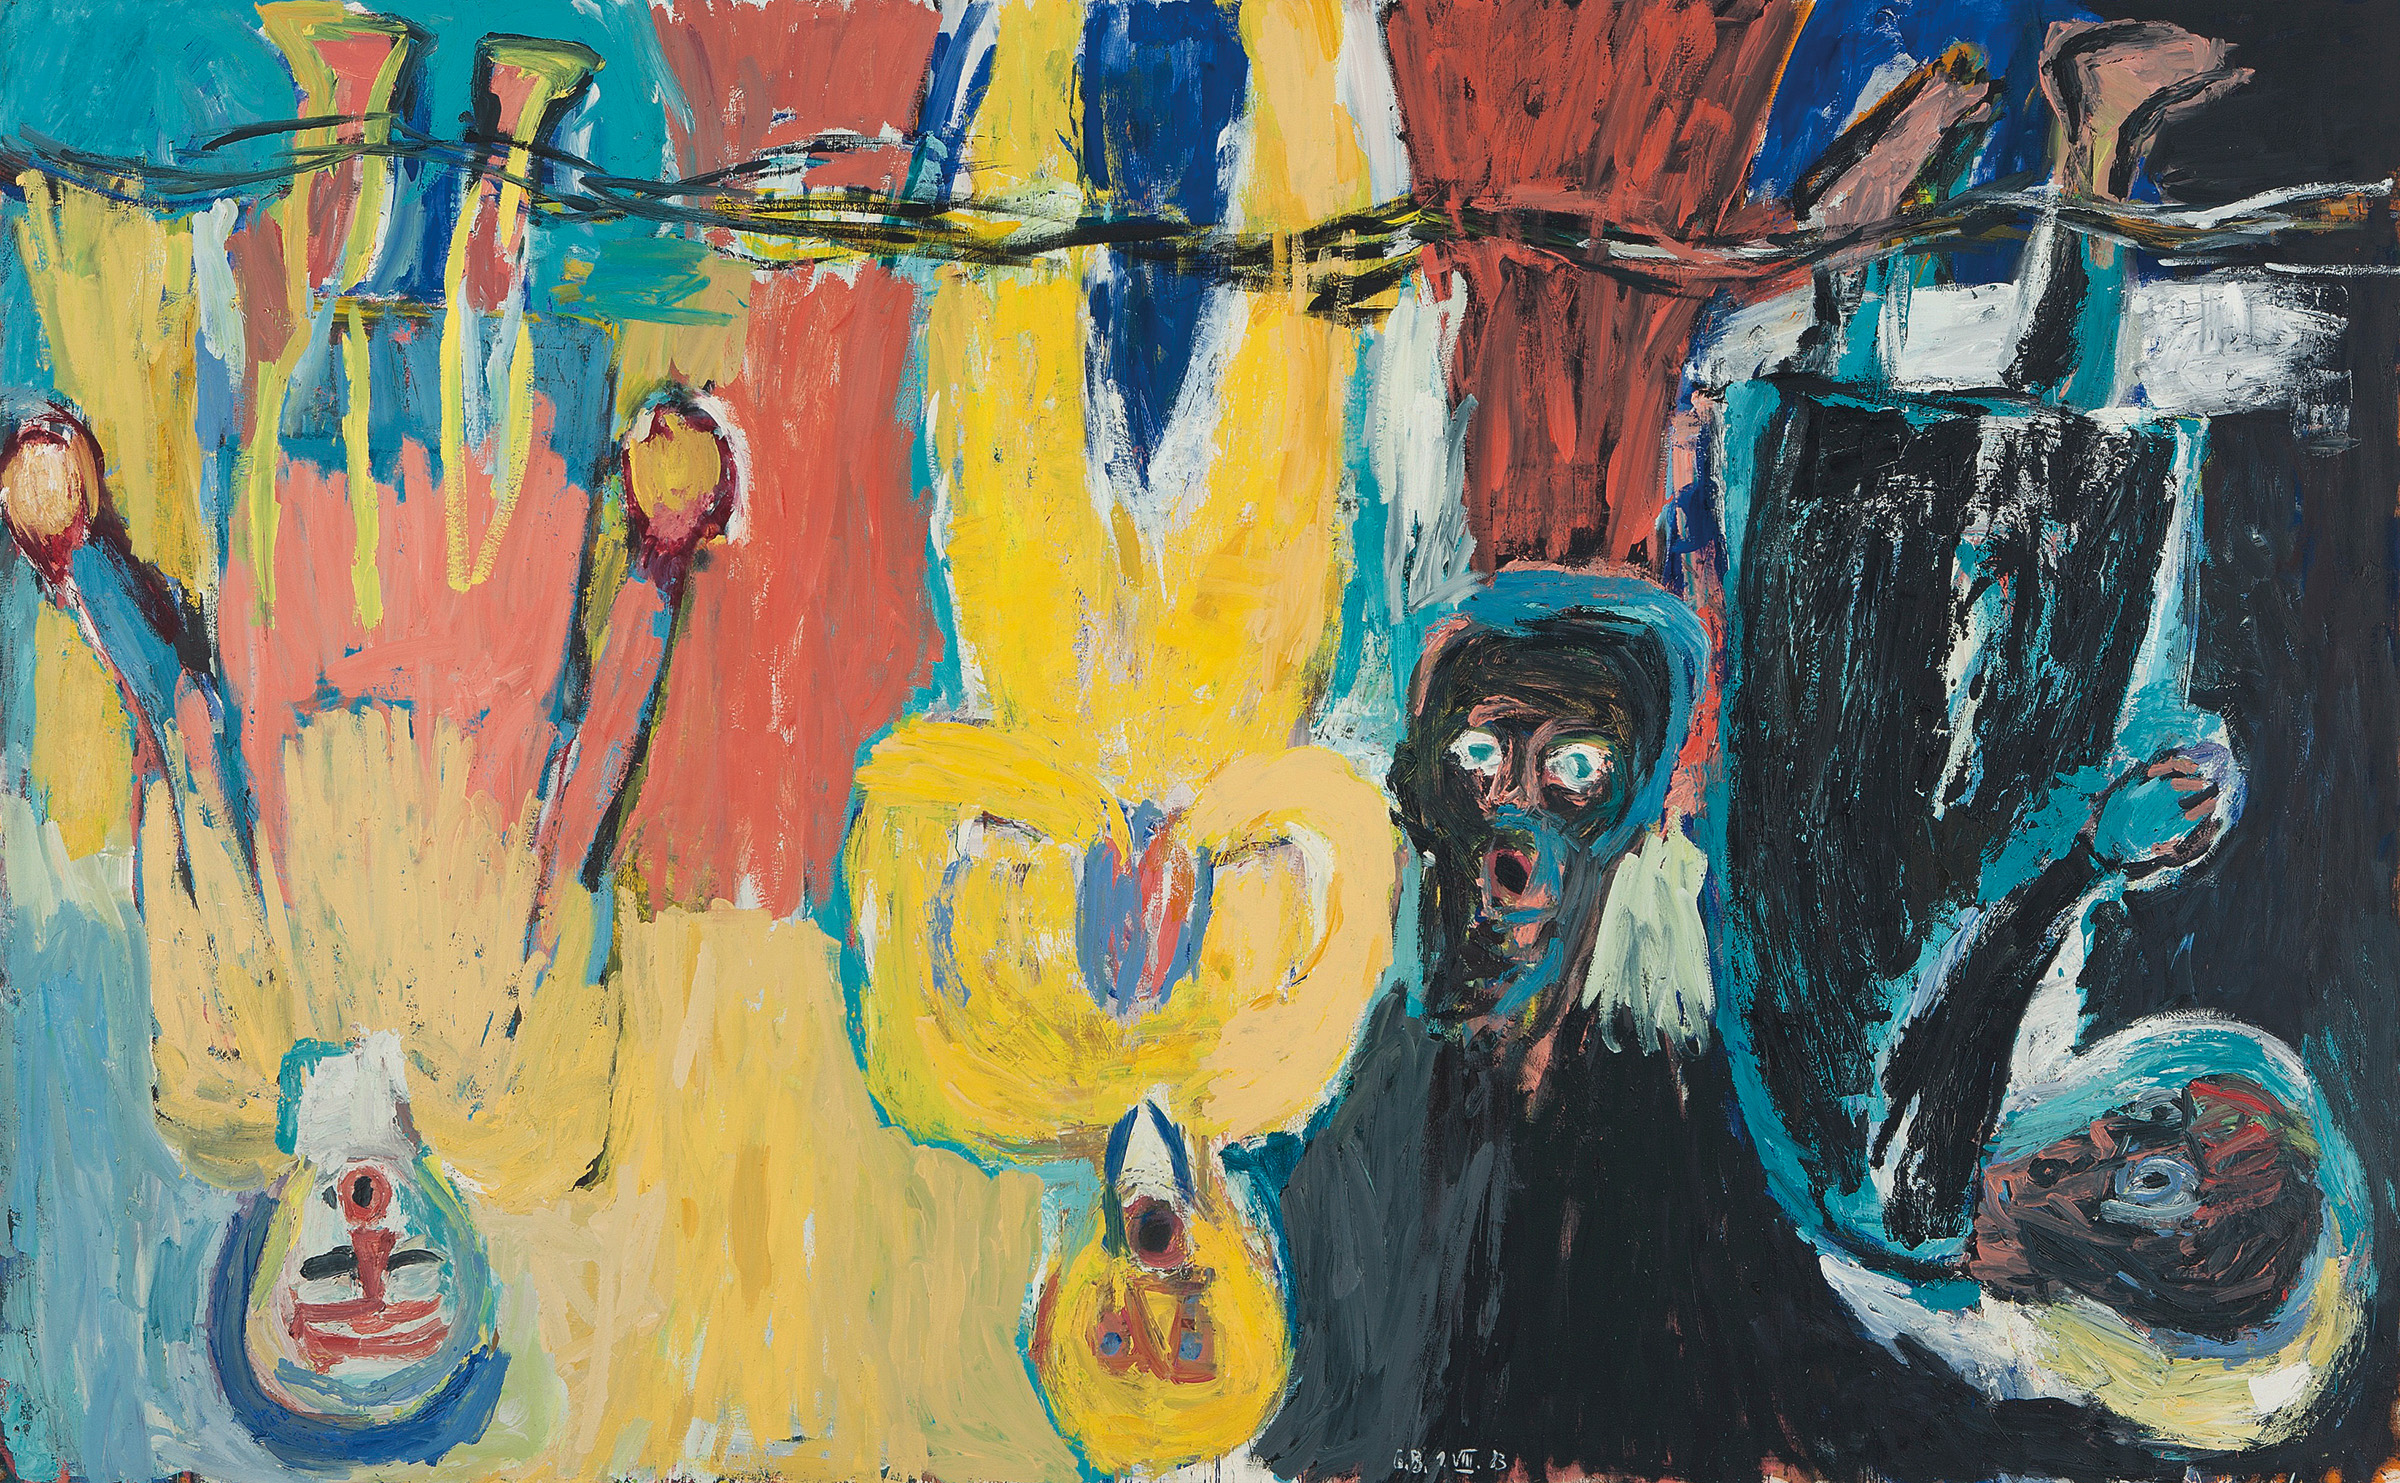 Georg Baselitz, The Brüke Chorus, 1983